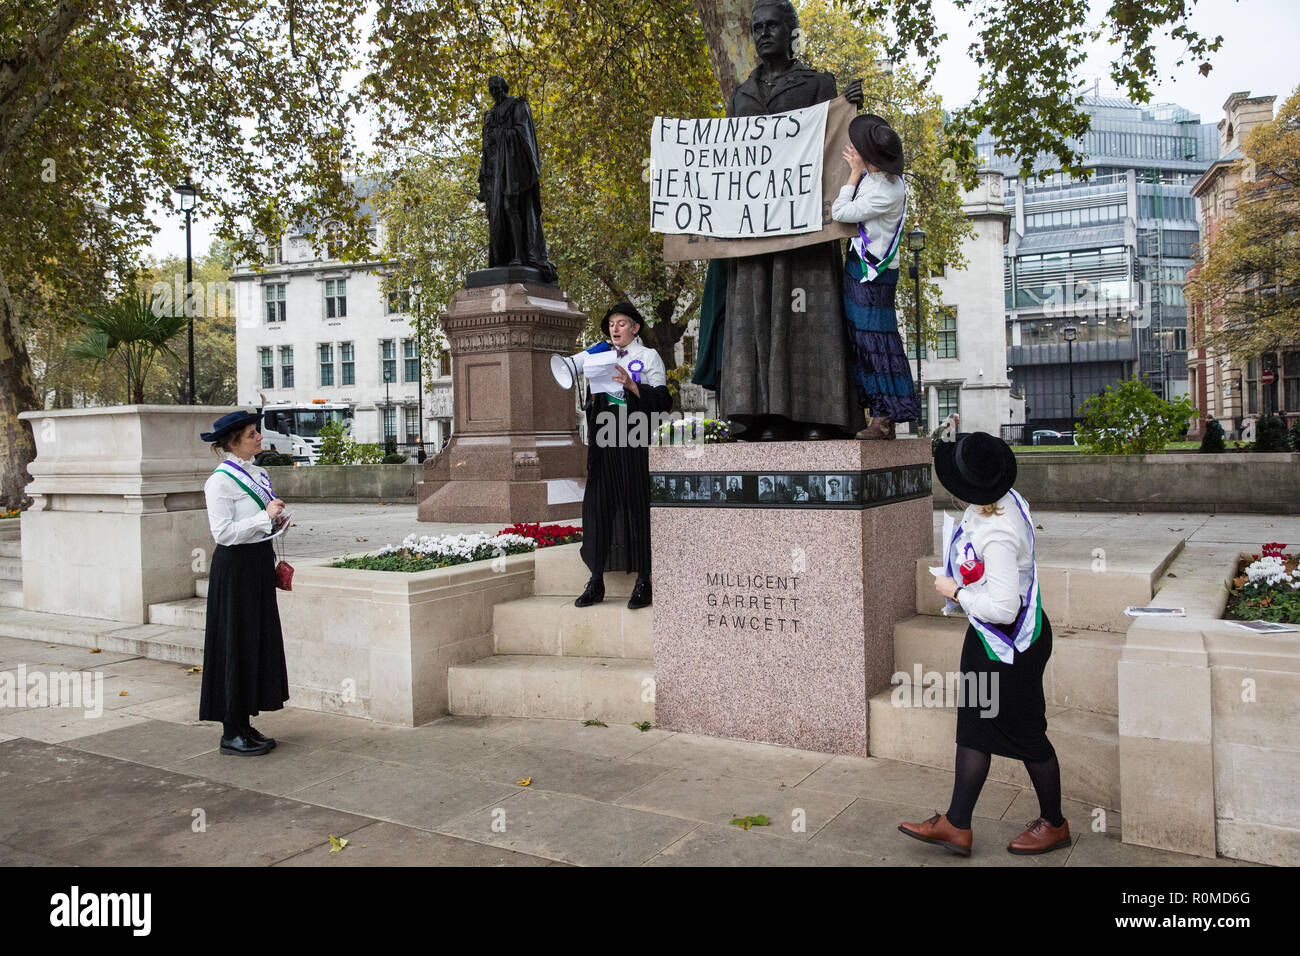 London, UK. 6th November, 2018. Activists from Feminist Fightback dressed as suffragettes change the sign on the new Millicent Fawcett statue in Parliament Square from 'Courage calls to Courage Everywhere' to 'Feminists demand healthcare for all' in protest against NHS charges for migrants. Under the new NHS charging system, migrants not considered 'settled' in the UK are being charged up to £7000 for pregnancy care and £1300 for an abortion in an NHS hospital. Credit: Mark Kerrison/Alamy Live News - Stock Image